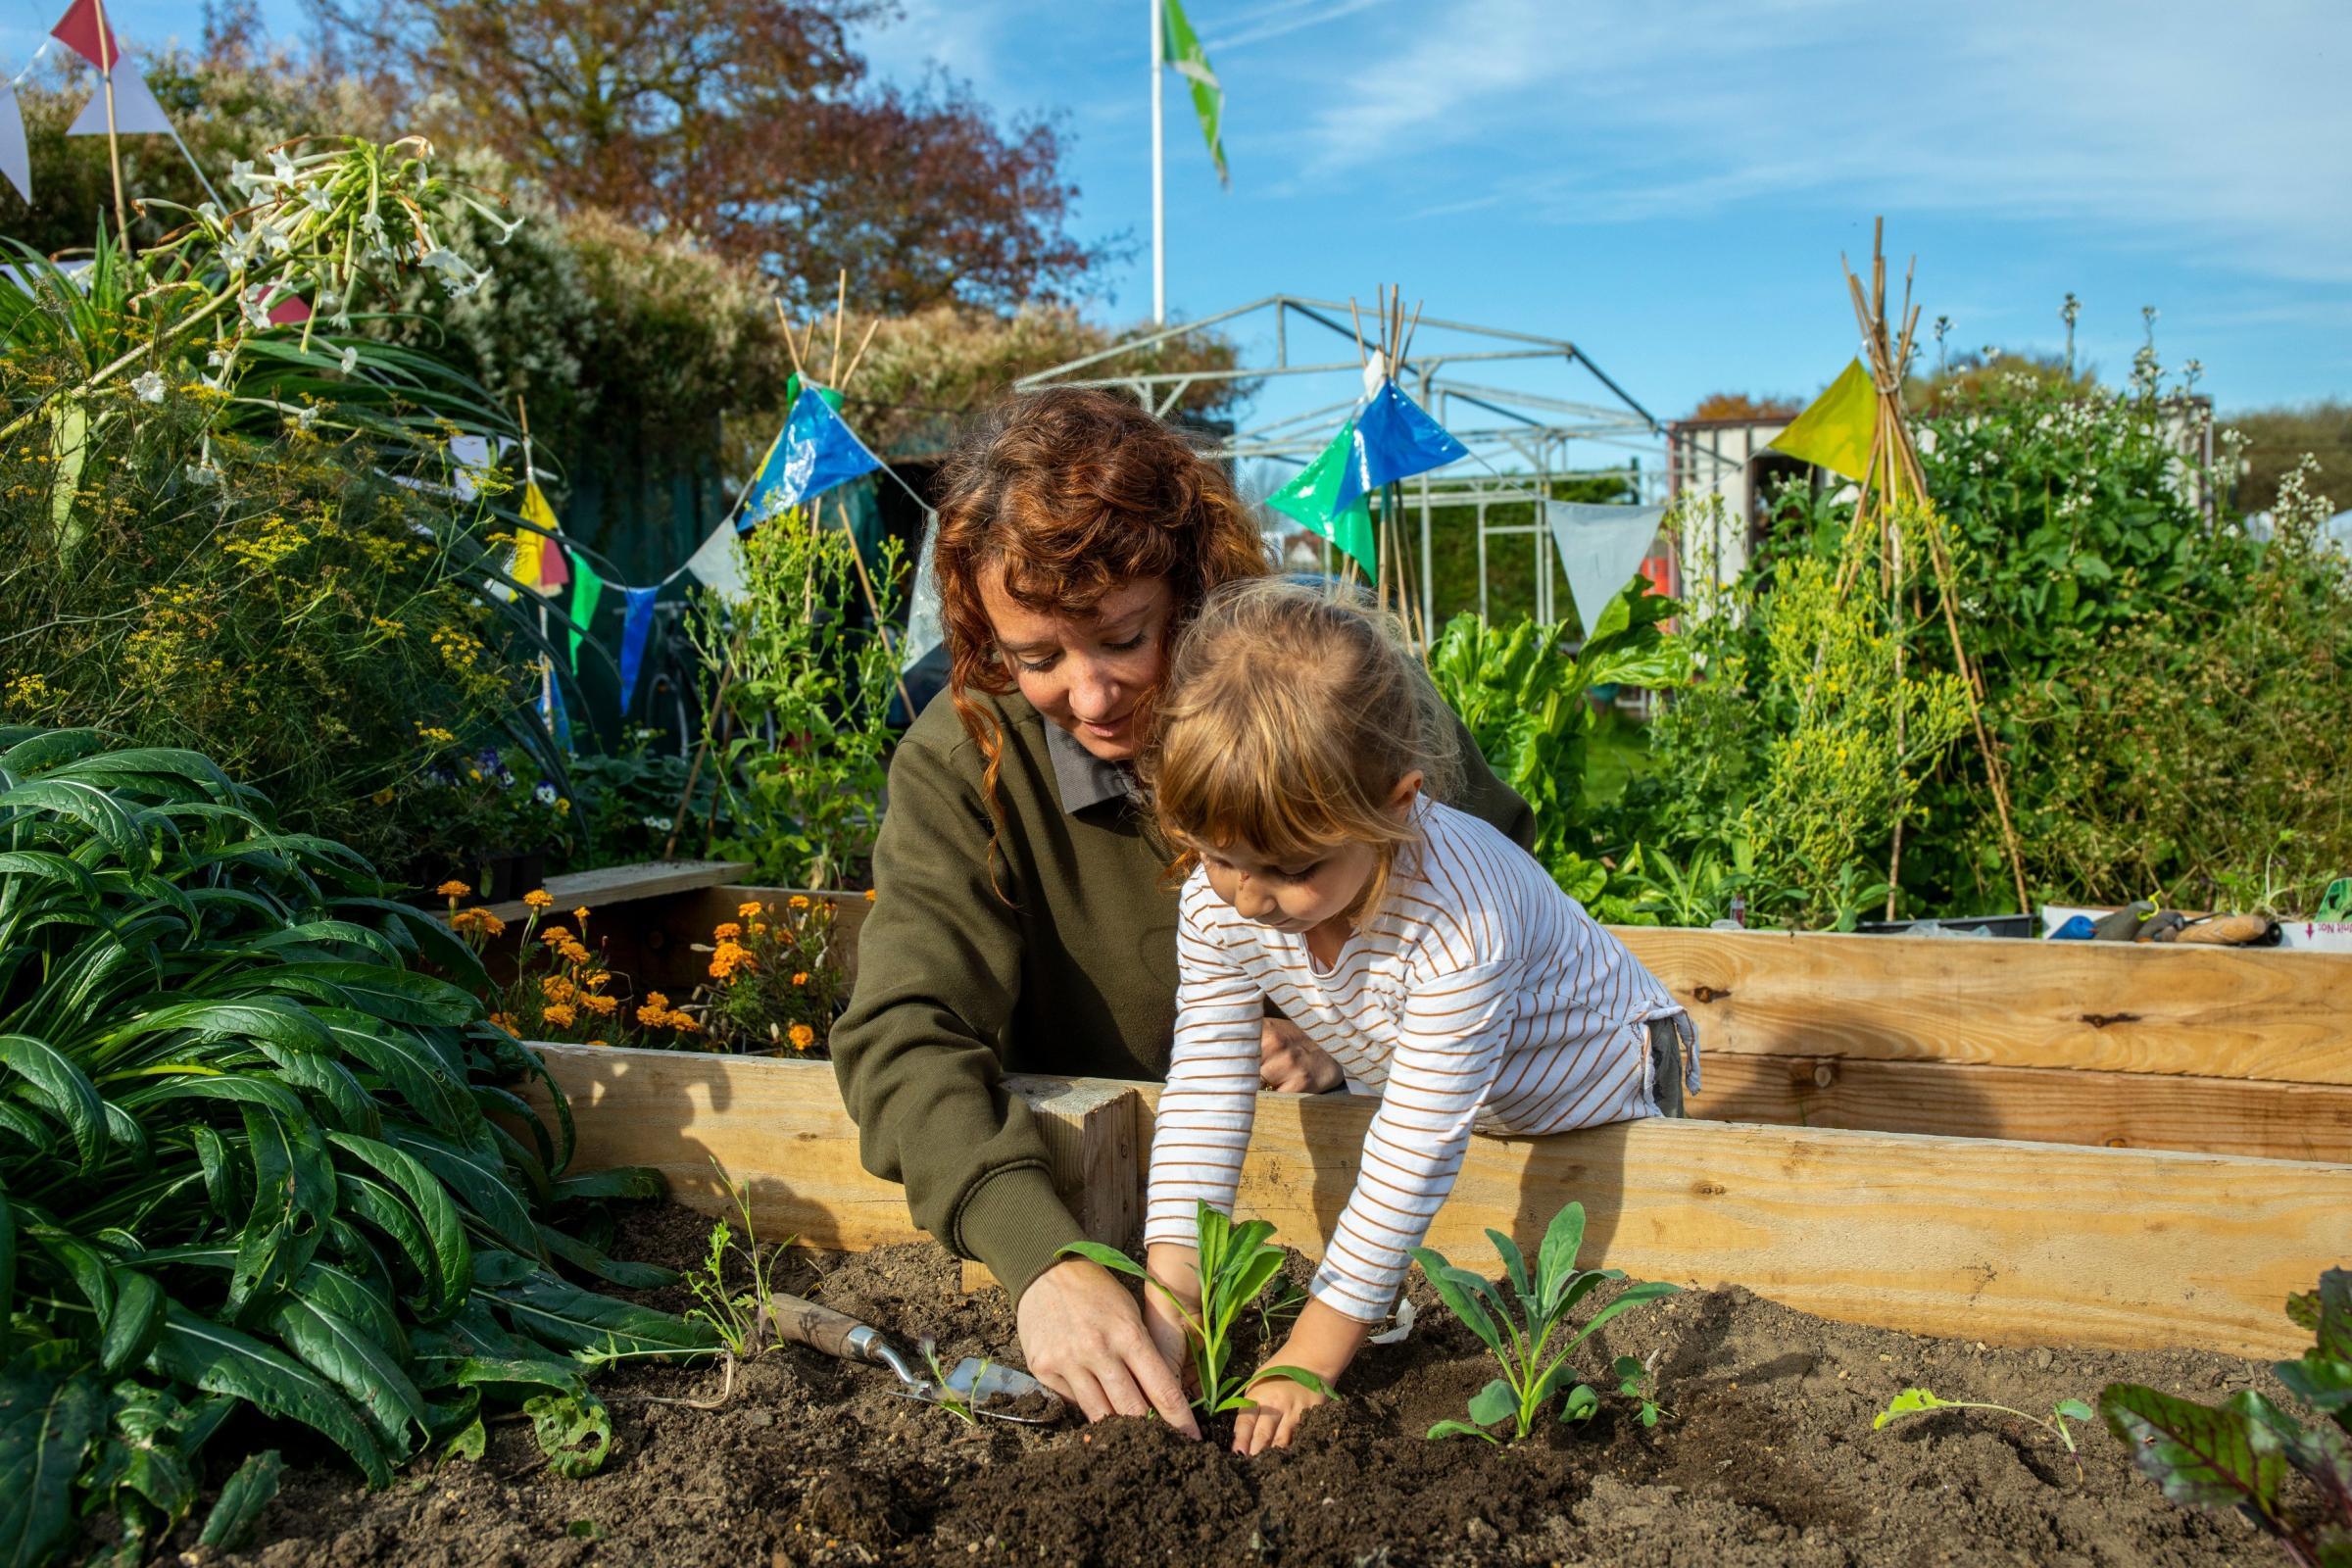 How community projects can receive £500 worth of plants or equipment from RHS